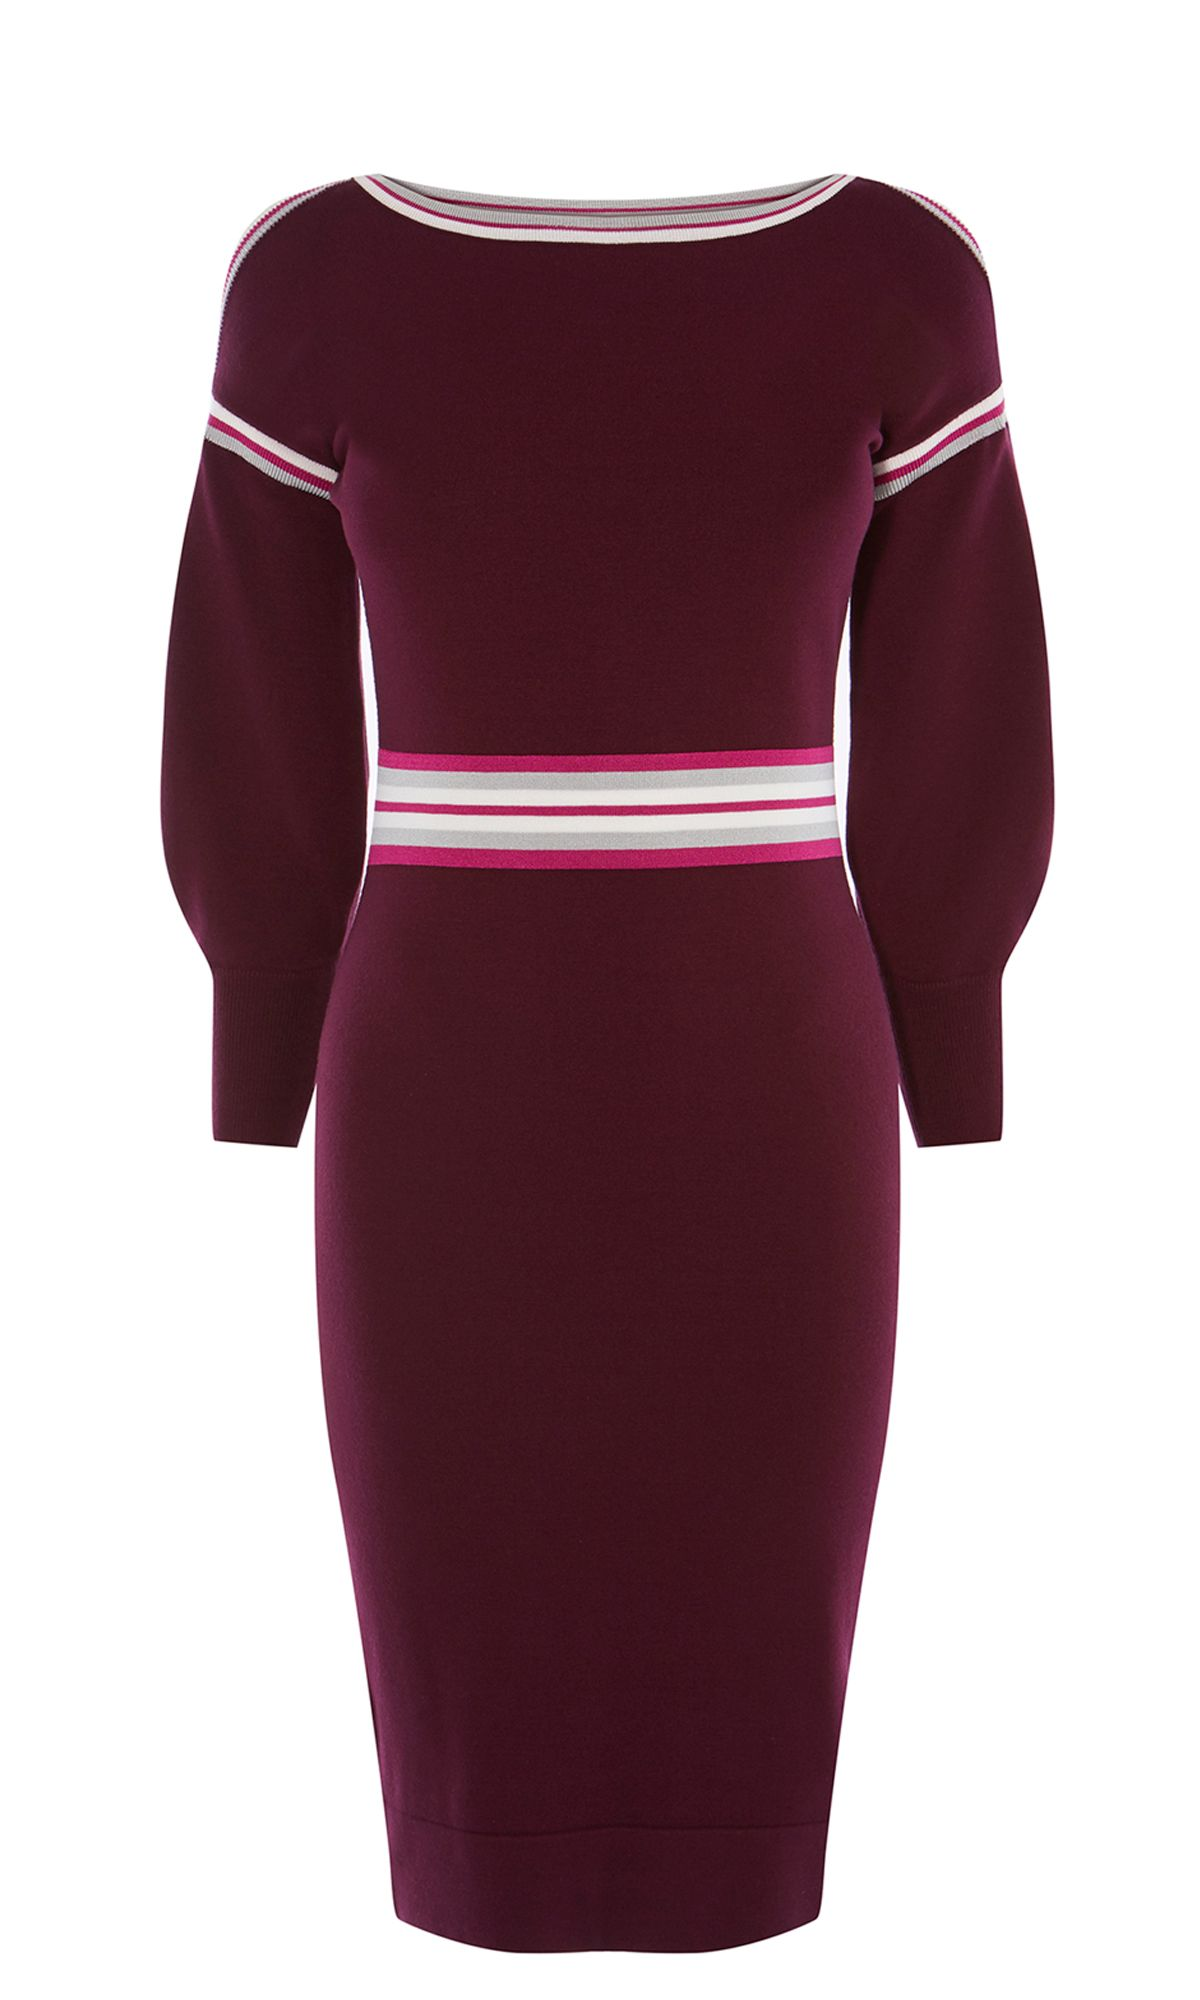 Karen Millen Sporty Stripe Knitted Dress, Dark Red